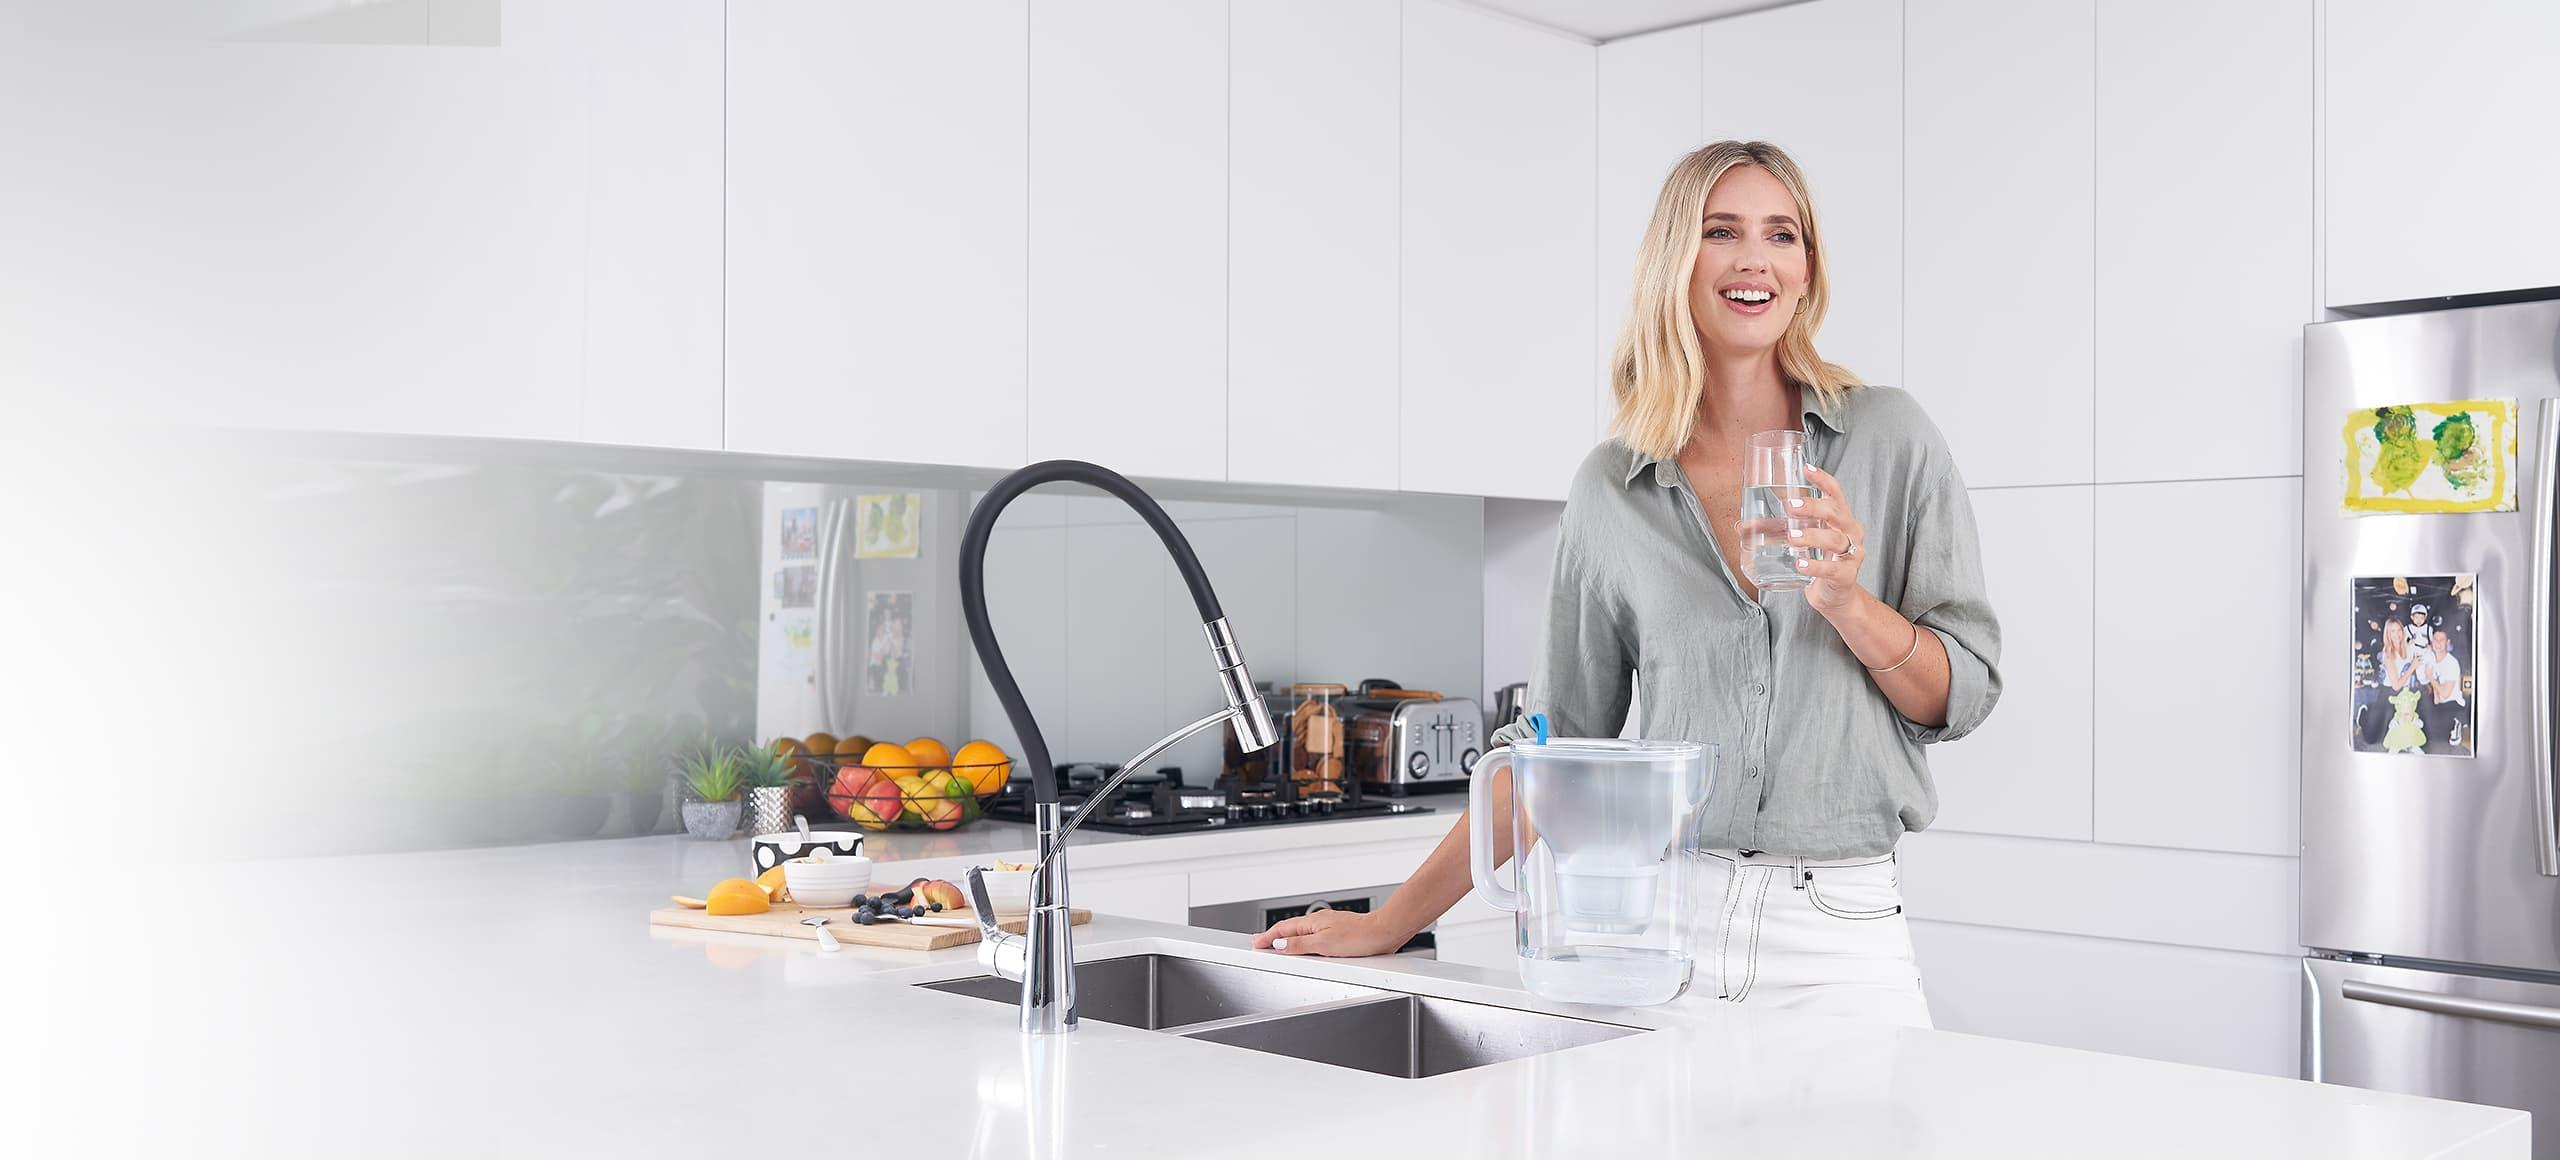 Woman with water filter jug